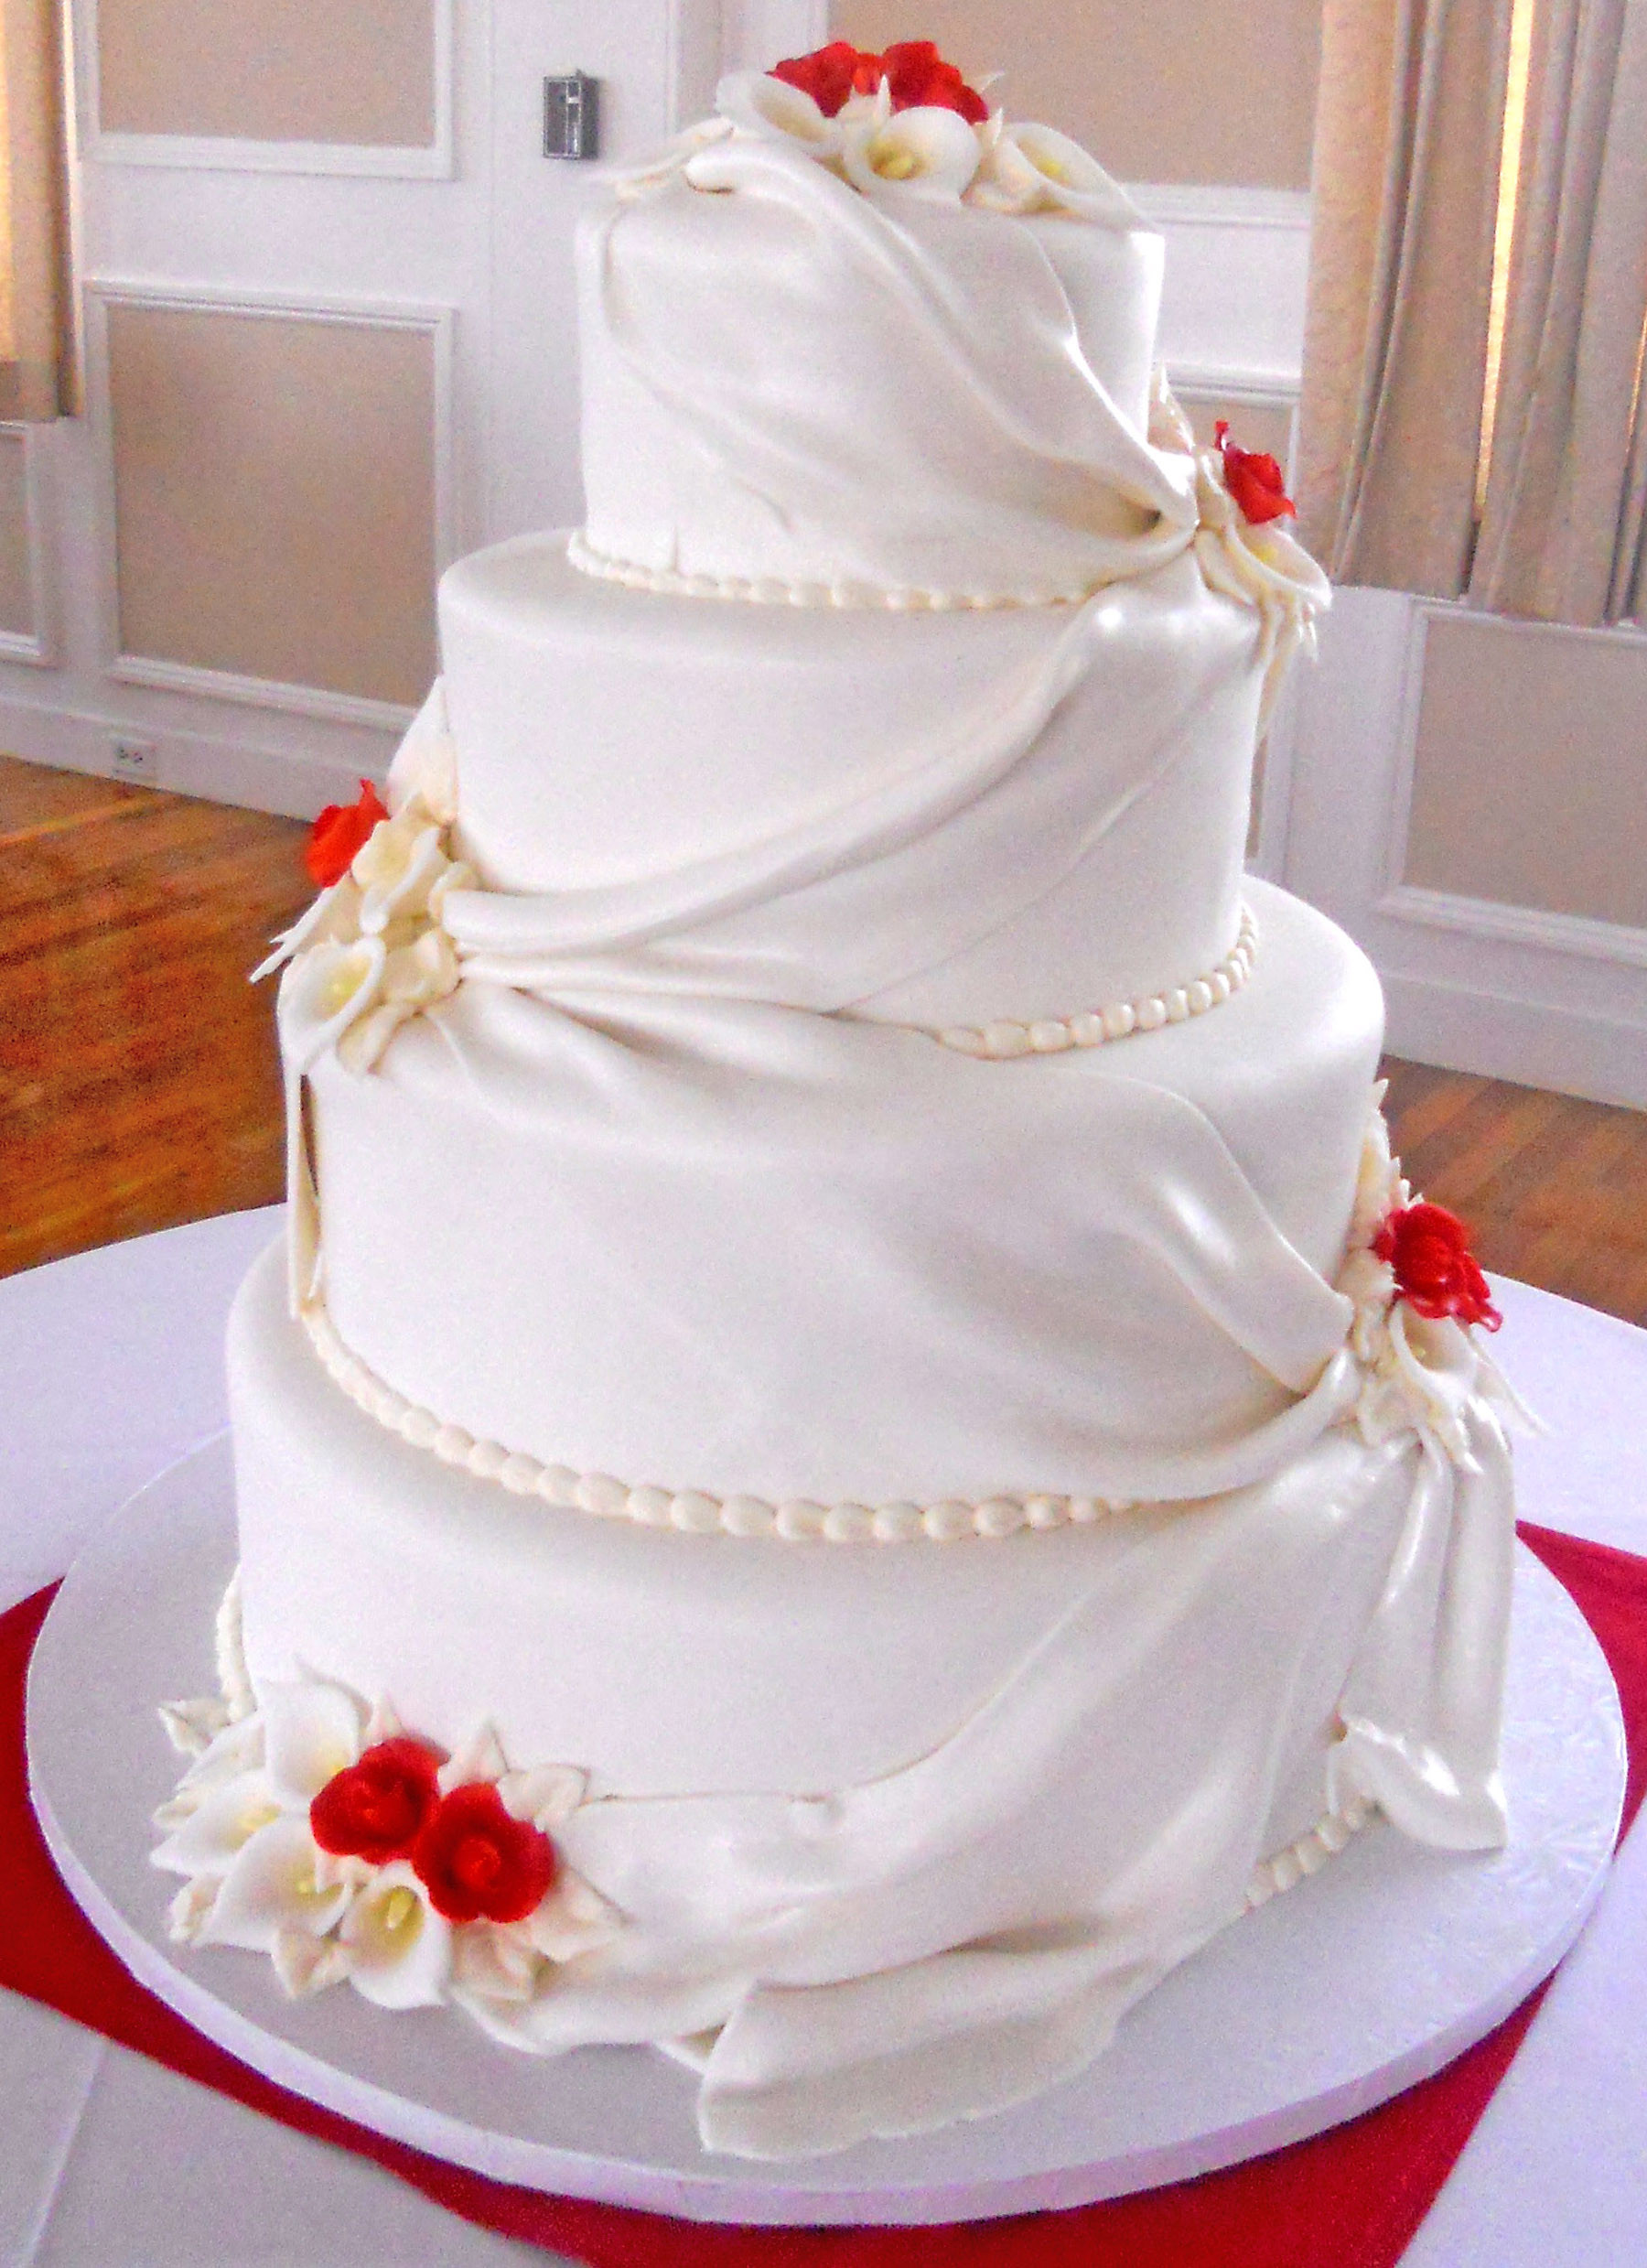 Wedding Cakes Prices And Pictures  Amazing Wedding Cakes for Amazing Events Registaz